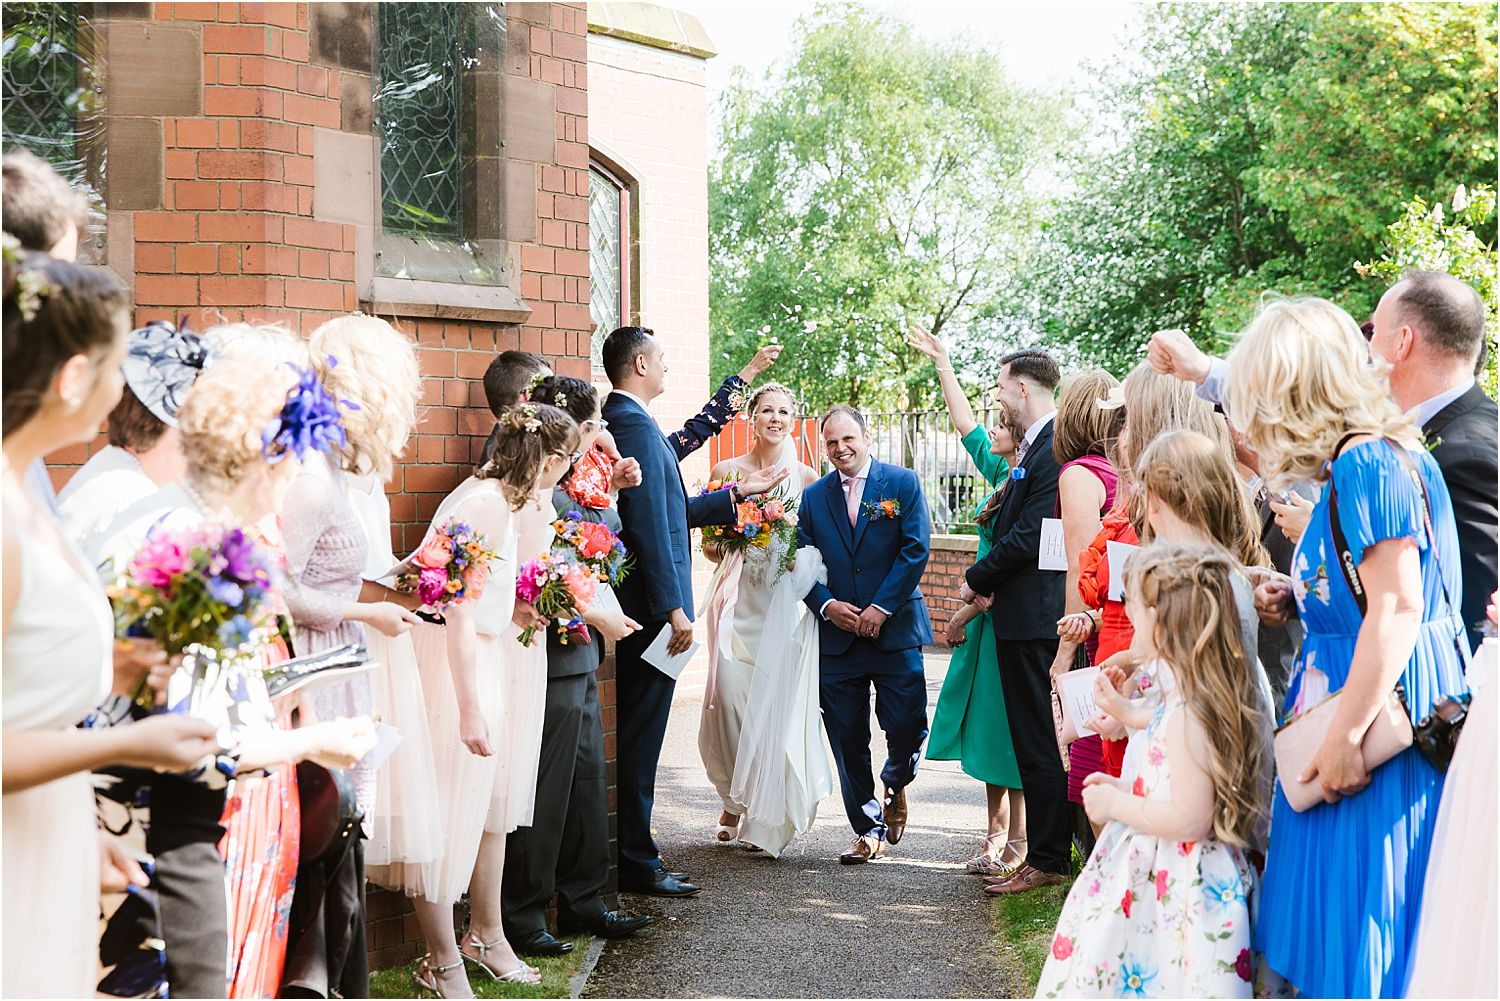 Bride and groom walking through avenue of guests prior to confetti being thrown at Lancashire wedding